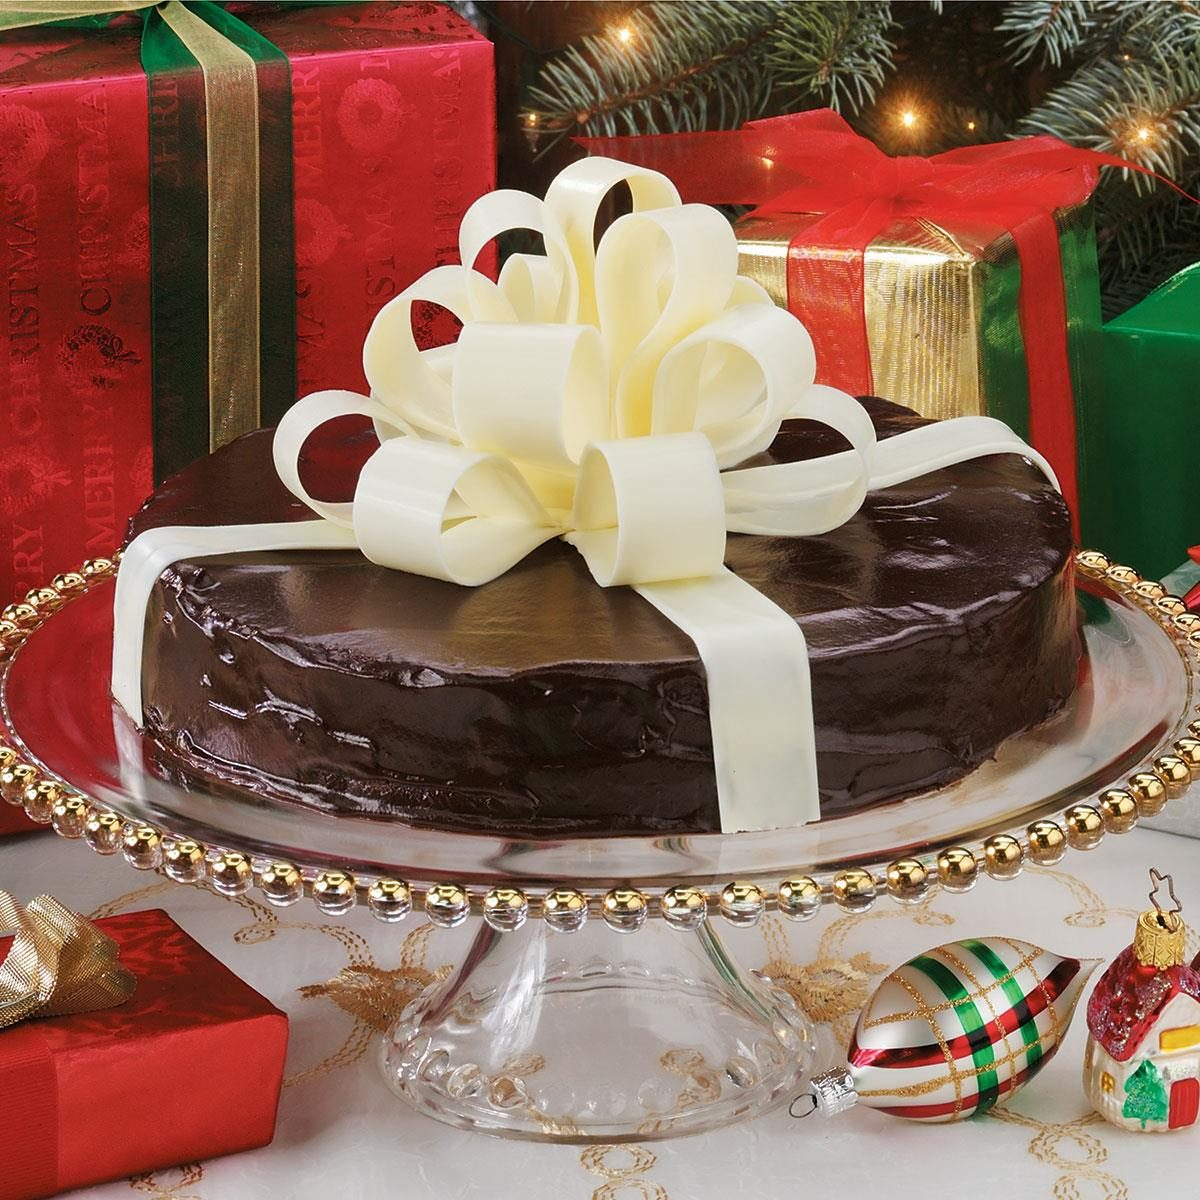 How To Make A Christmas Party Fun: Chocolate Bow Recipe